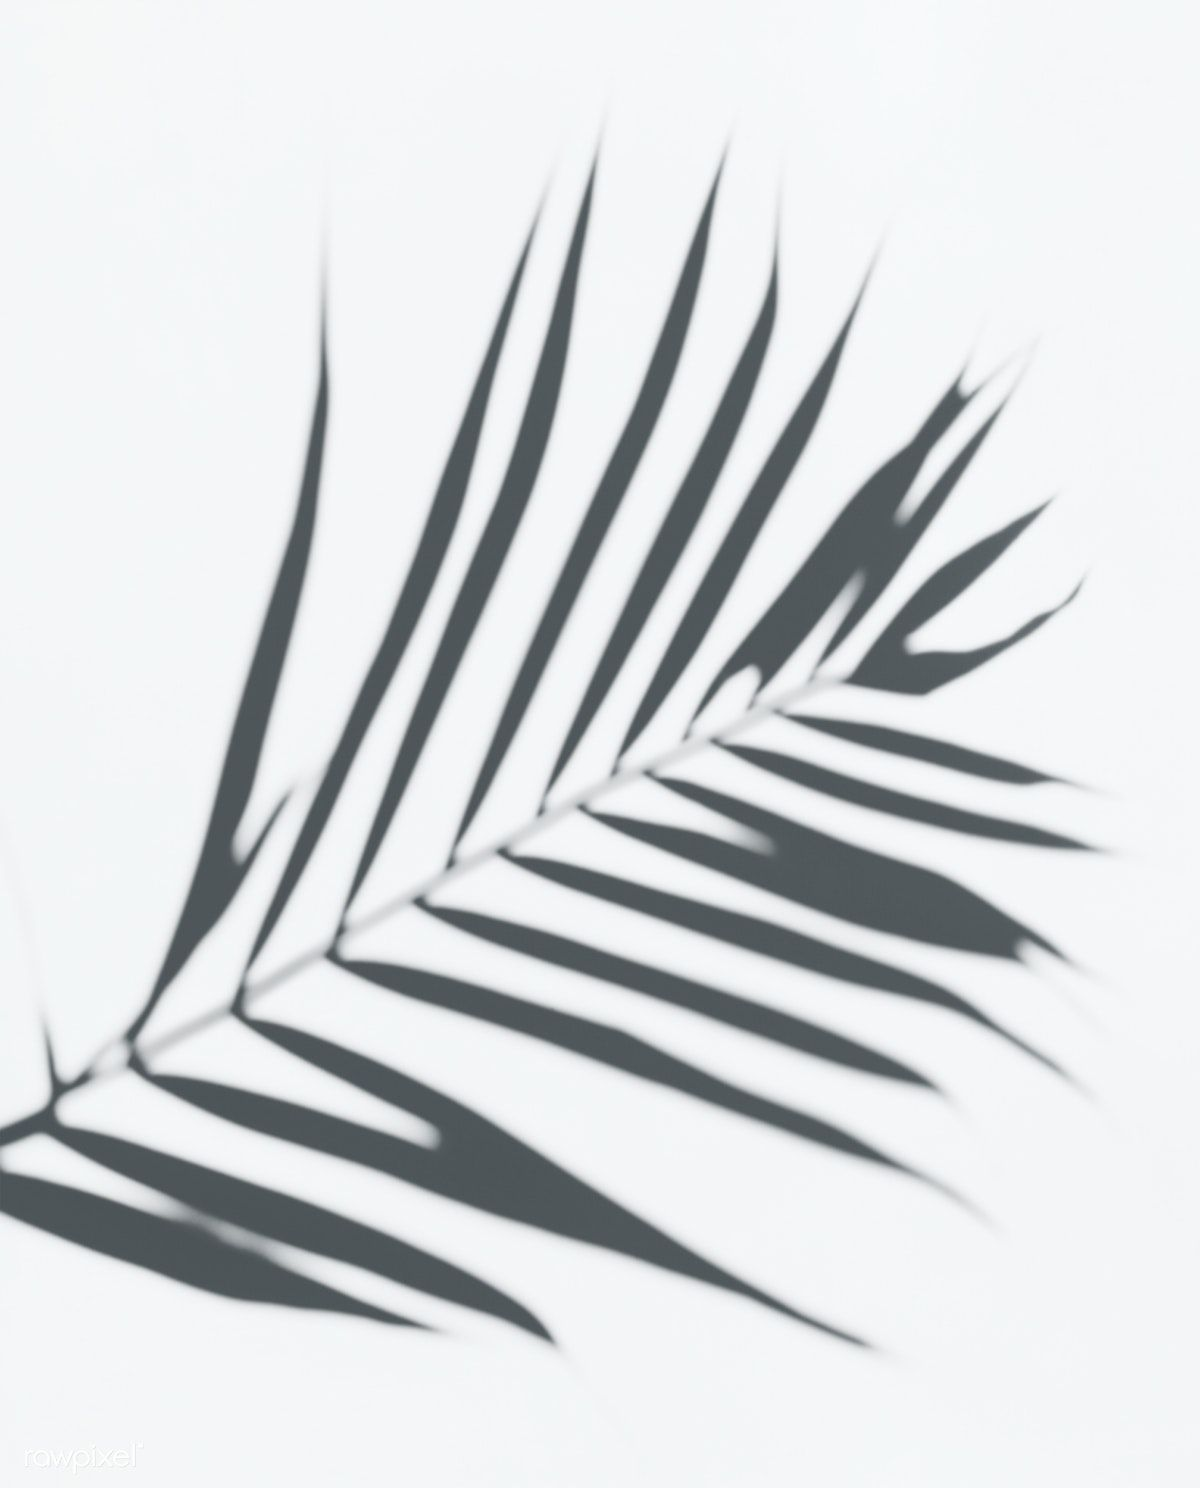 Download Premium Psd Of Shadow Of Palm Leaves On A White Wall 556135 Palm Tree Photography Leaf Photography Shadow